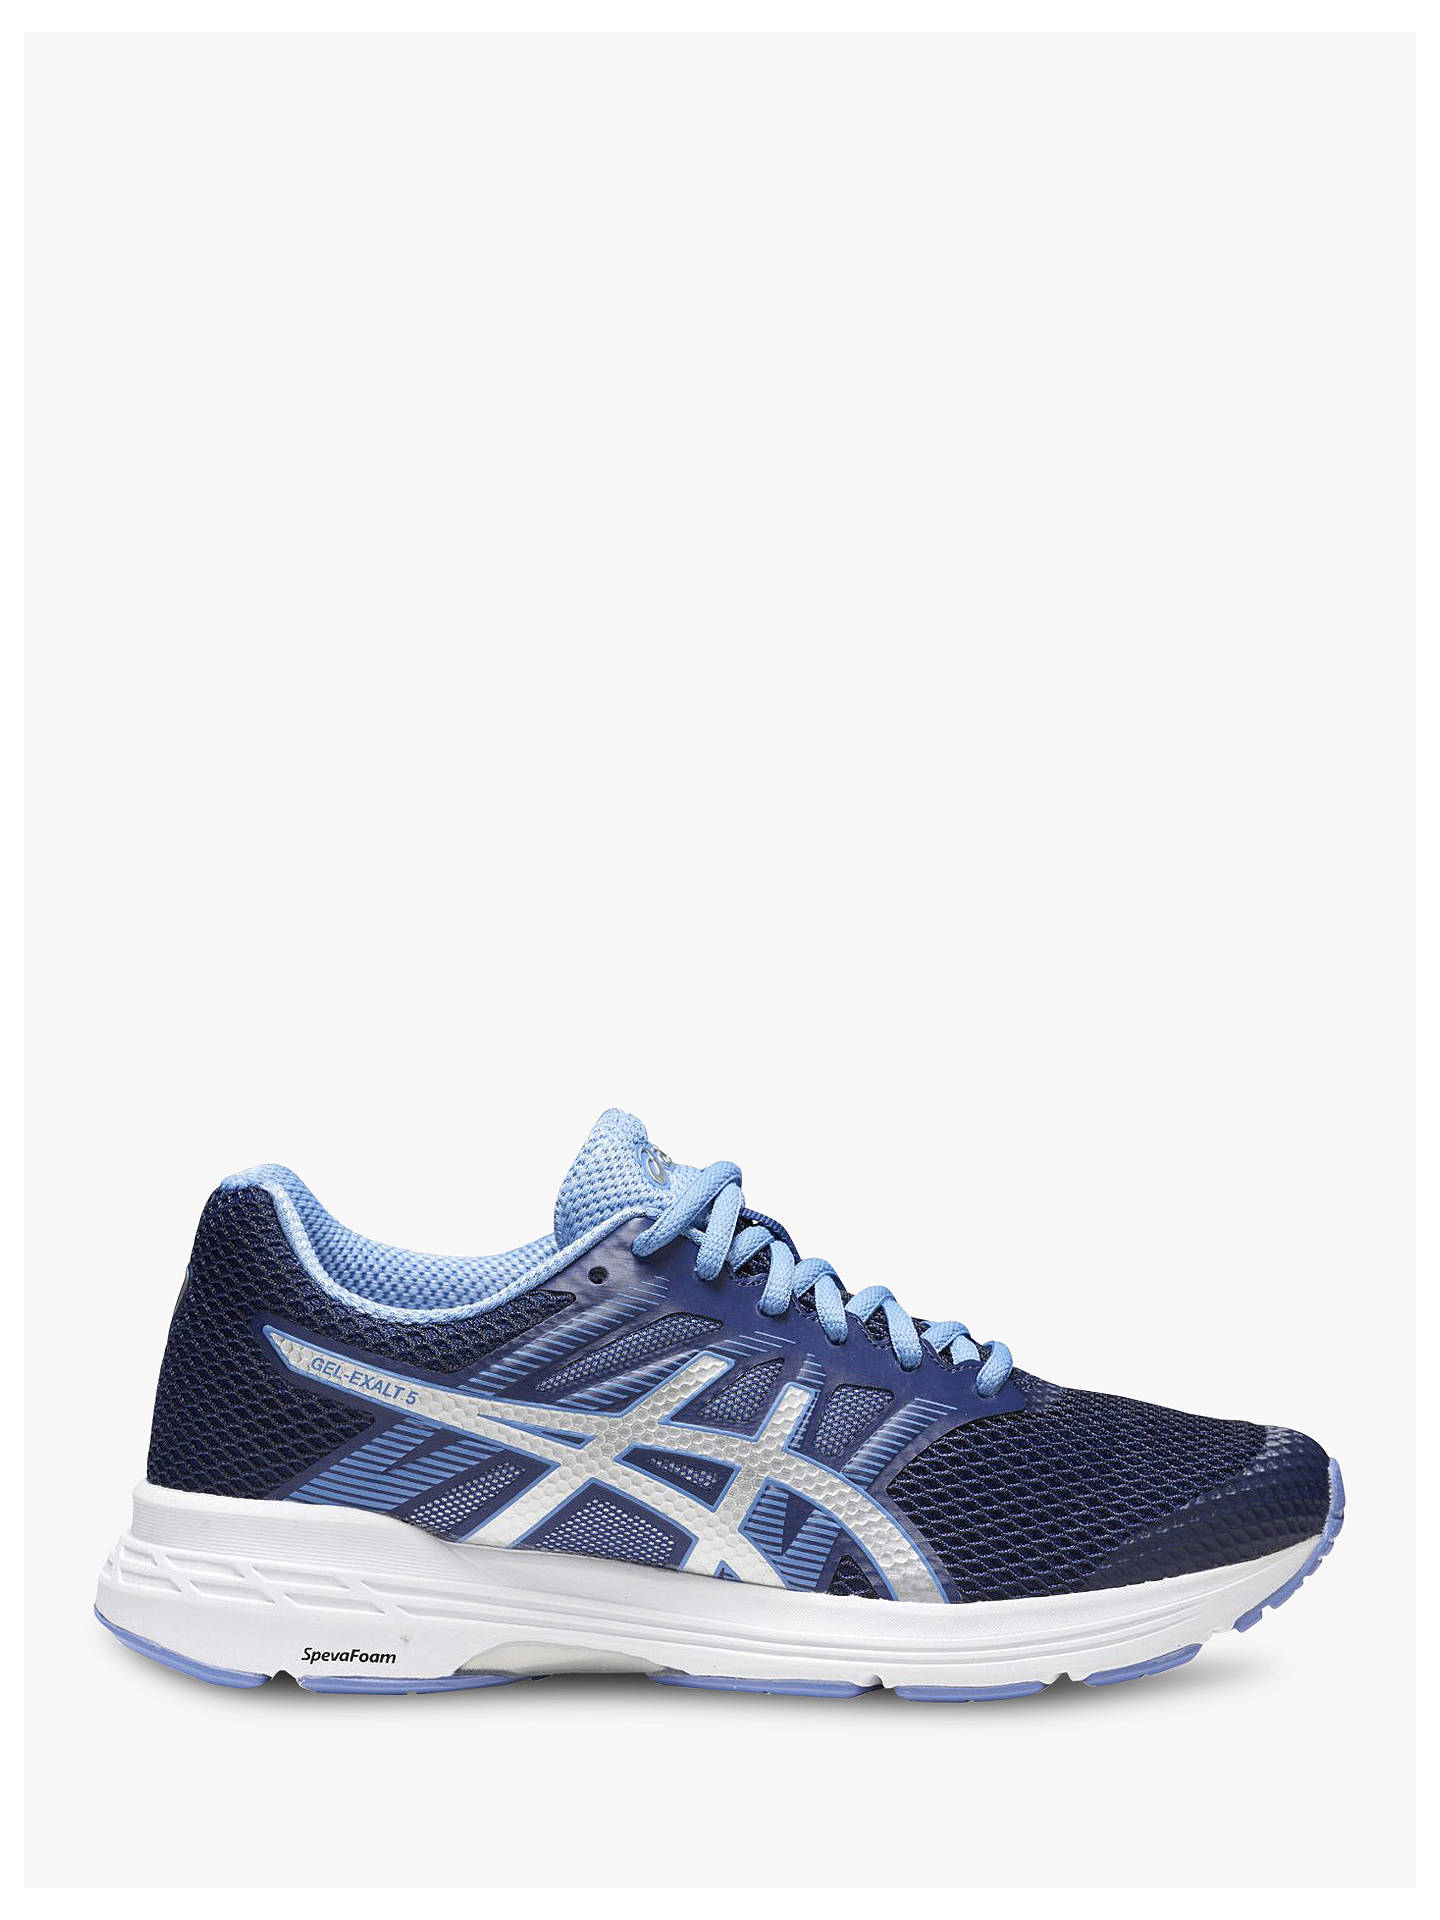 4f3b82455df0d1 Buy ASICS GEL-Exalt 5 Women s Running Shoes